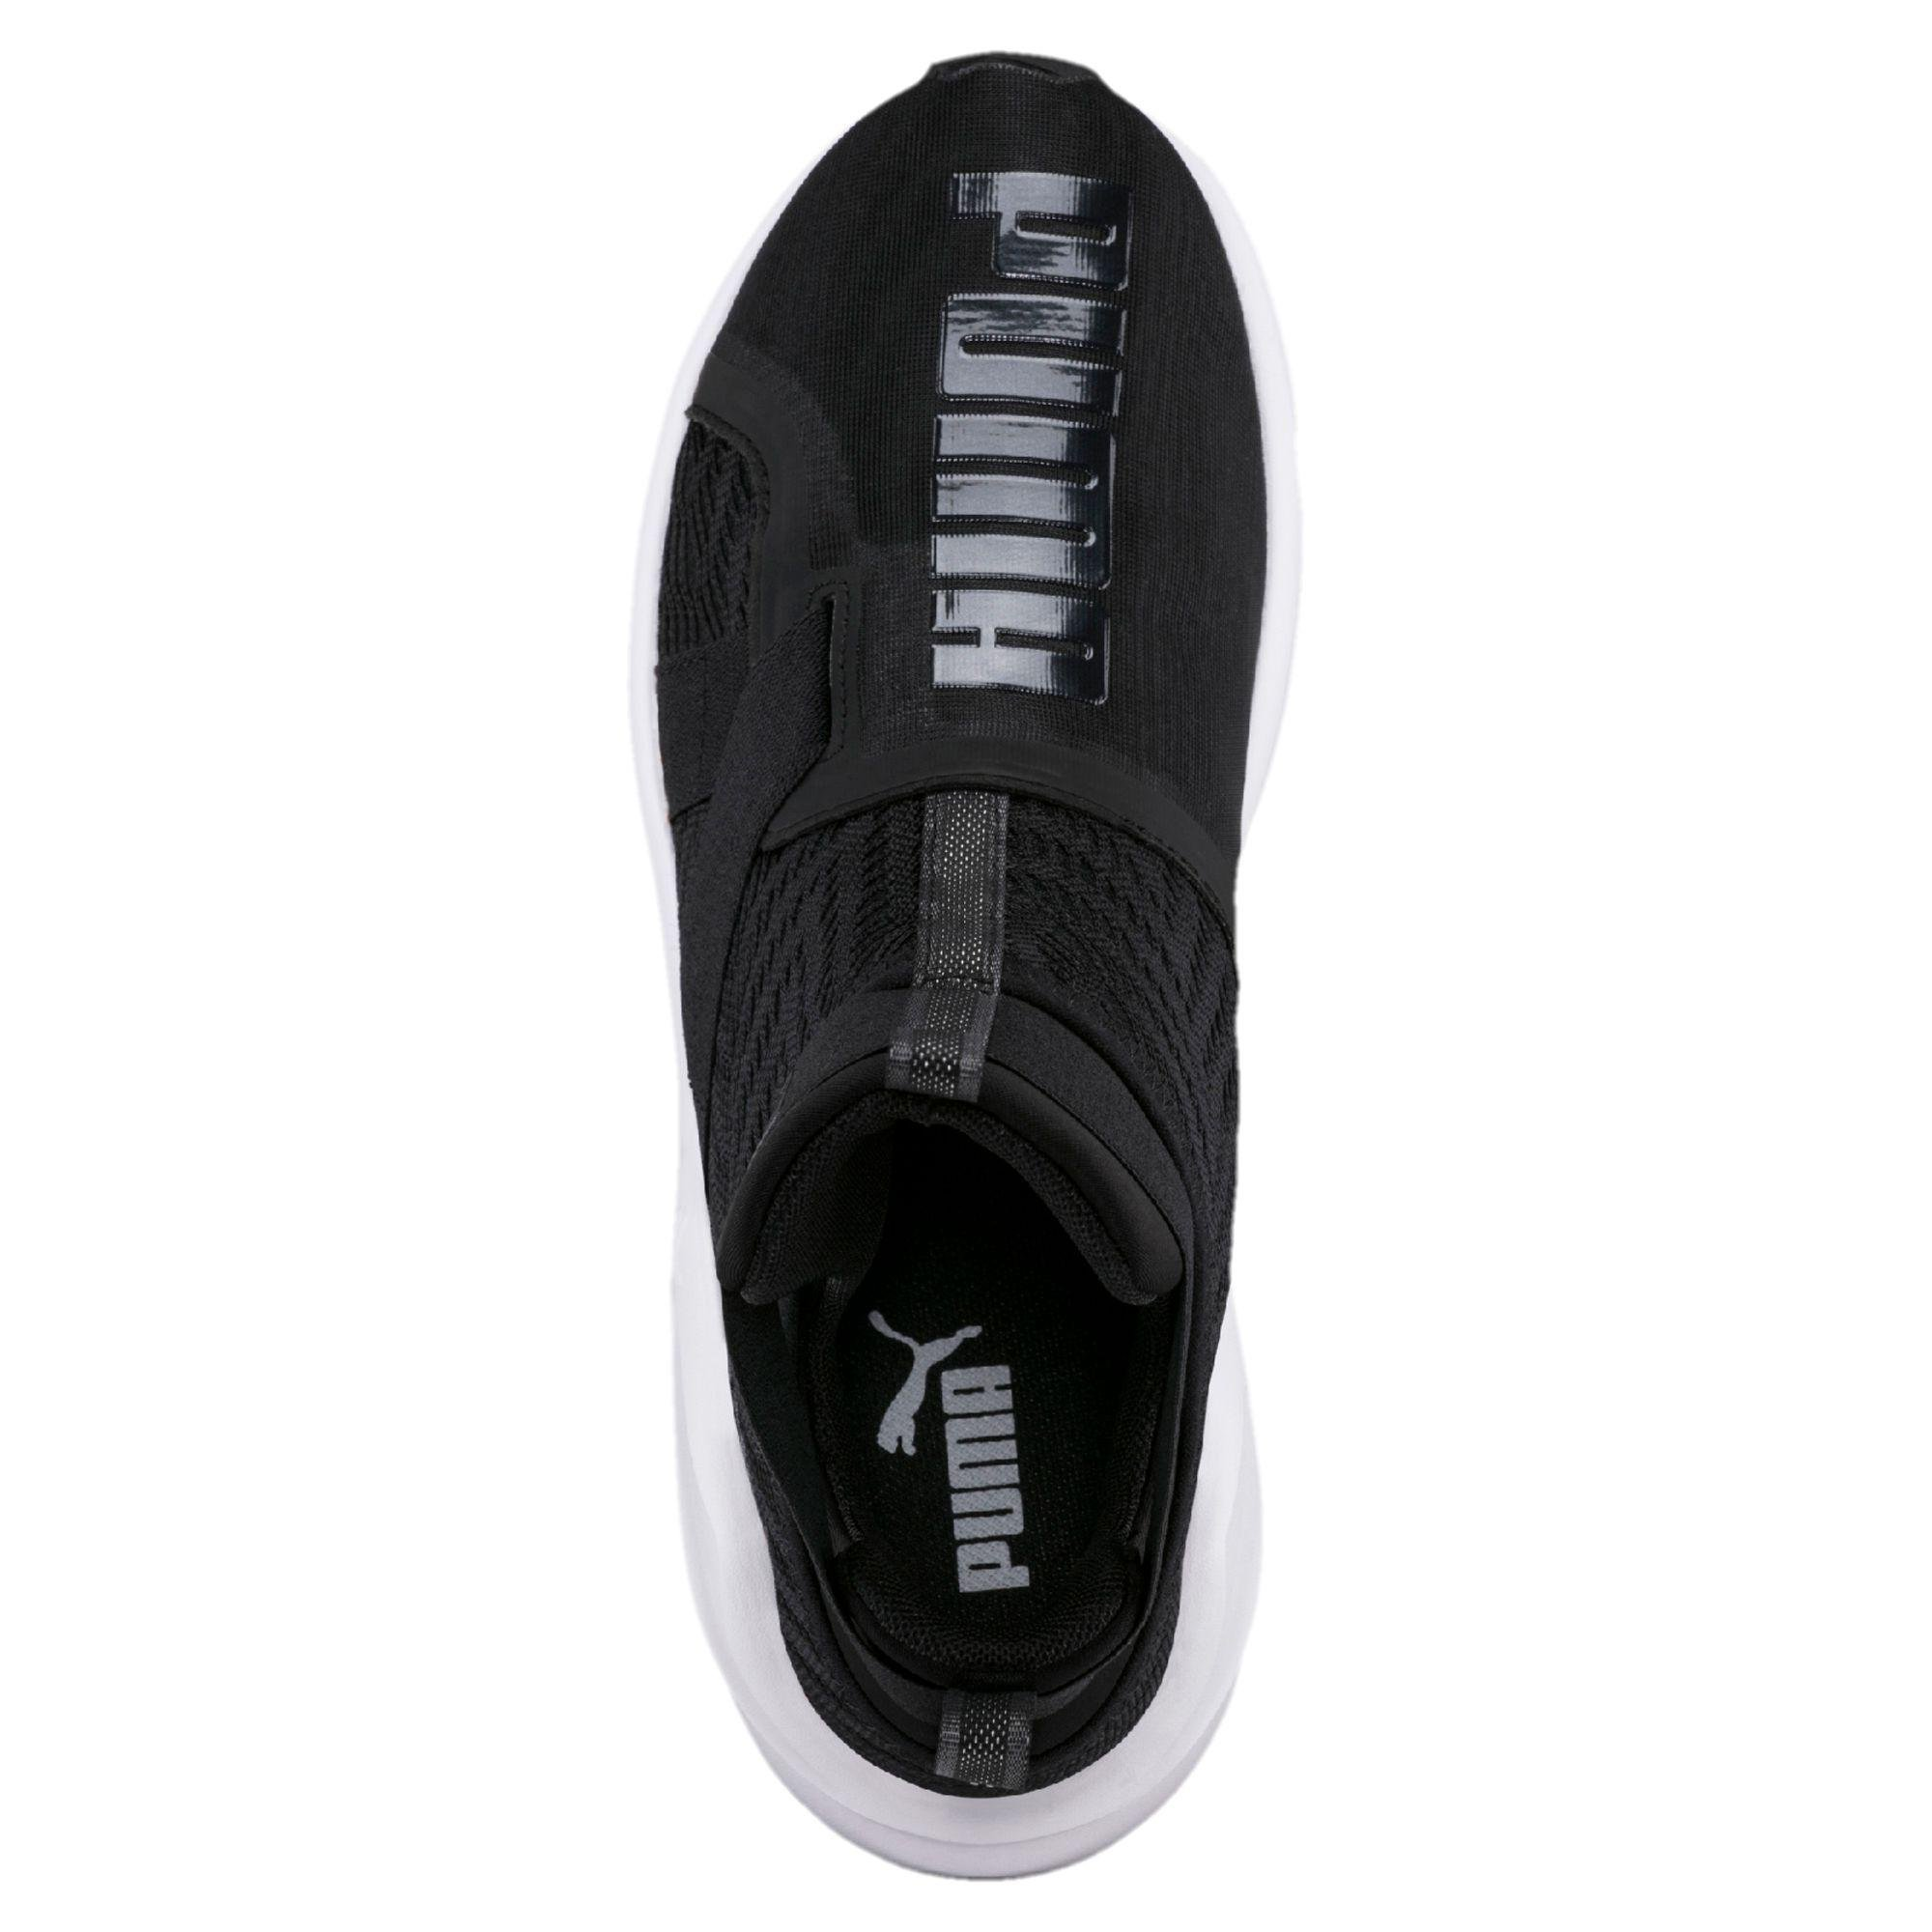 Lyst - PUMA Fierce Strap Swirl Women s Training Shoes in Black b8b2ee651